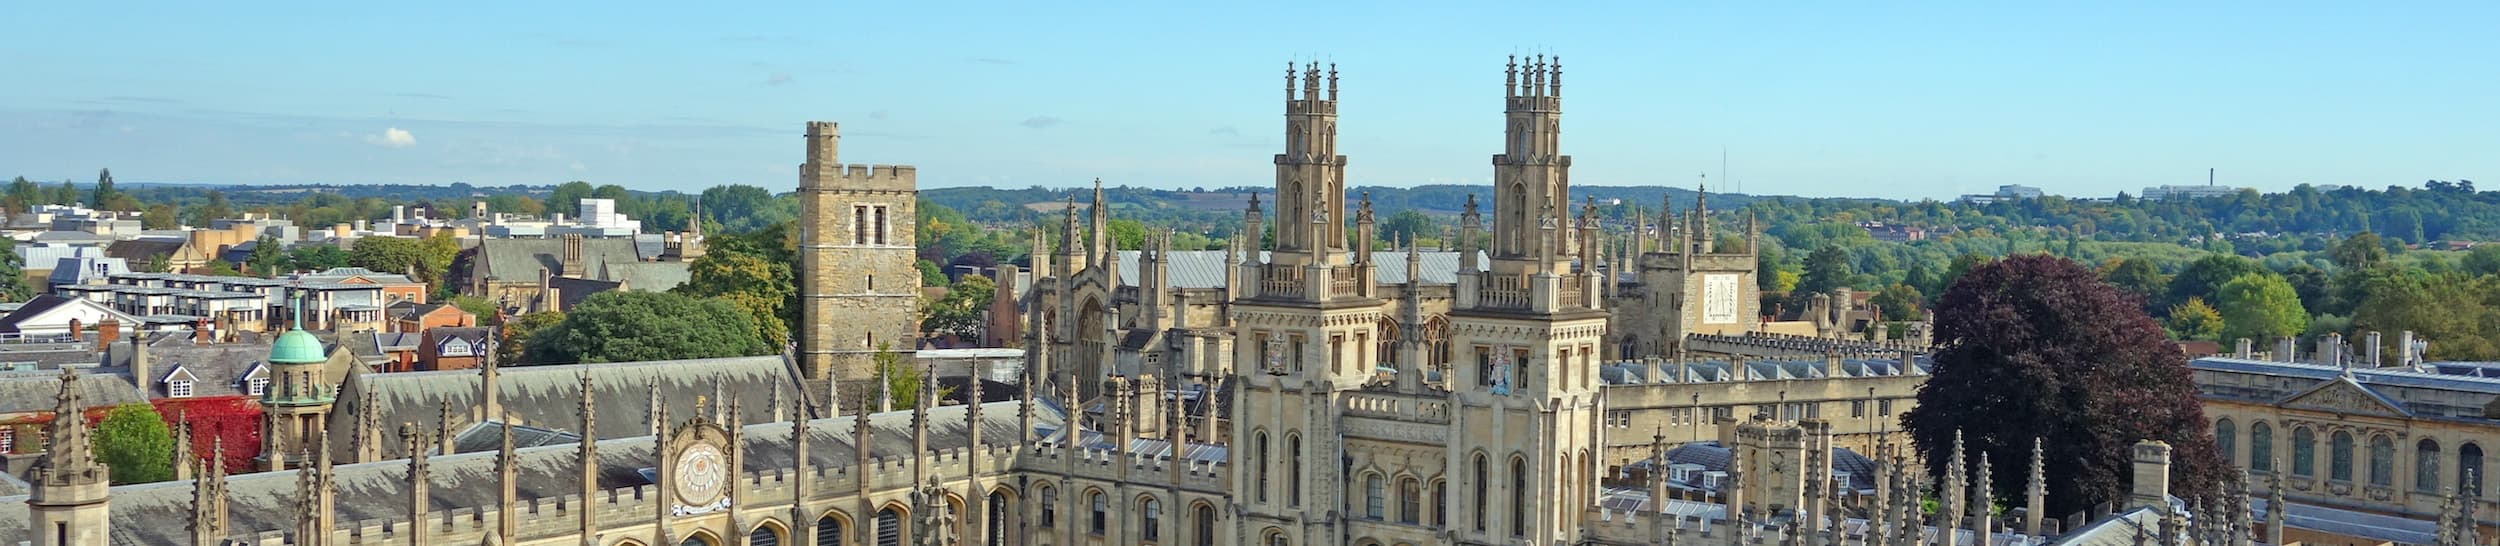 Skyline of Oxford